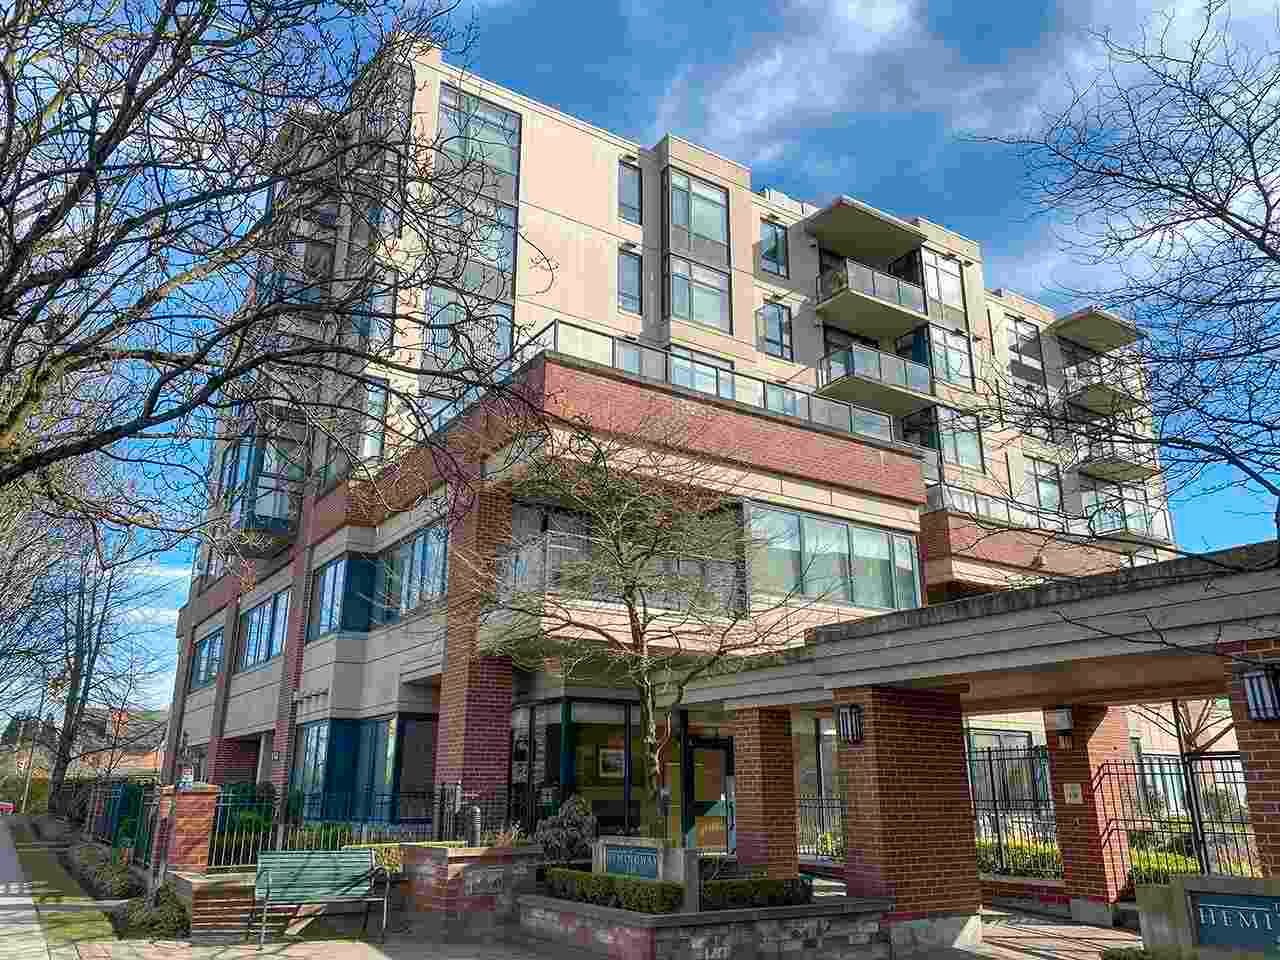 """Main Photo: 202 538 W 45TH Avenue in Vancouver: Oakridge VW Condo for sale in """"The Hemingway"""" (Vancouver West)  : MLS®# R2562655"""